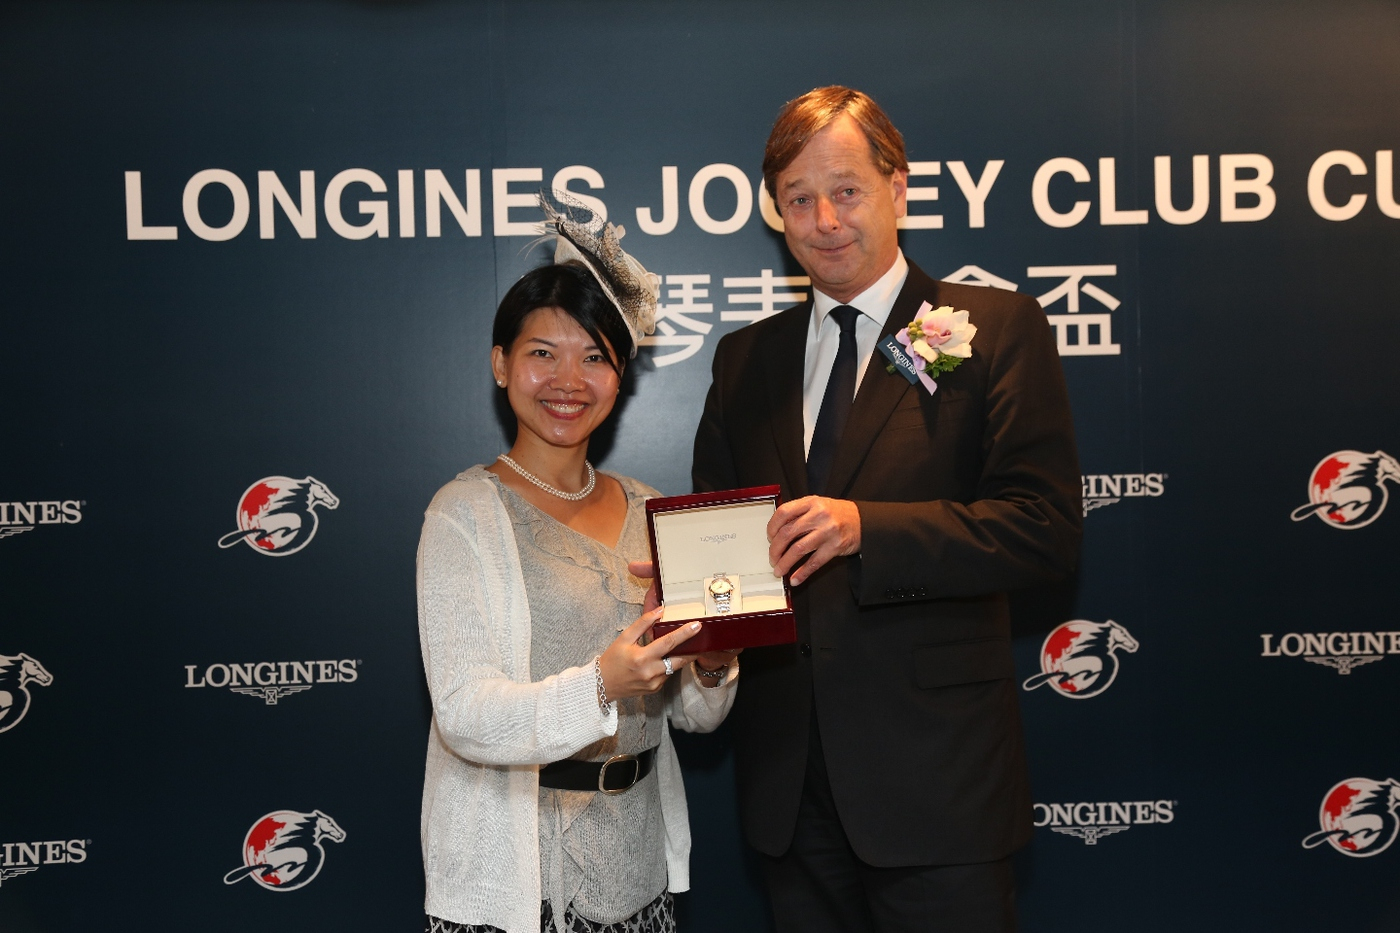 Longines Flat Racing Event: The first ever Longines Jockey Club Cup showcased Longines' passion for equestrian sports 5